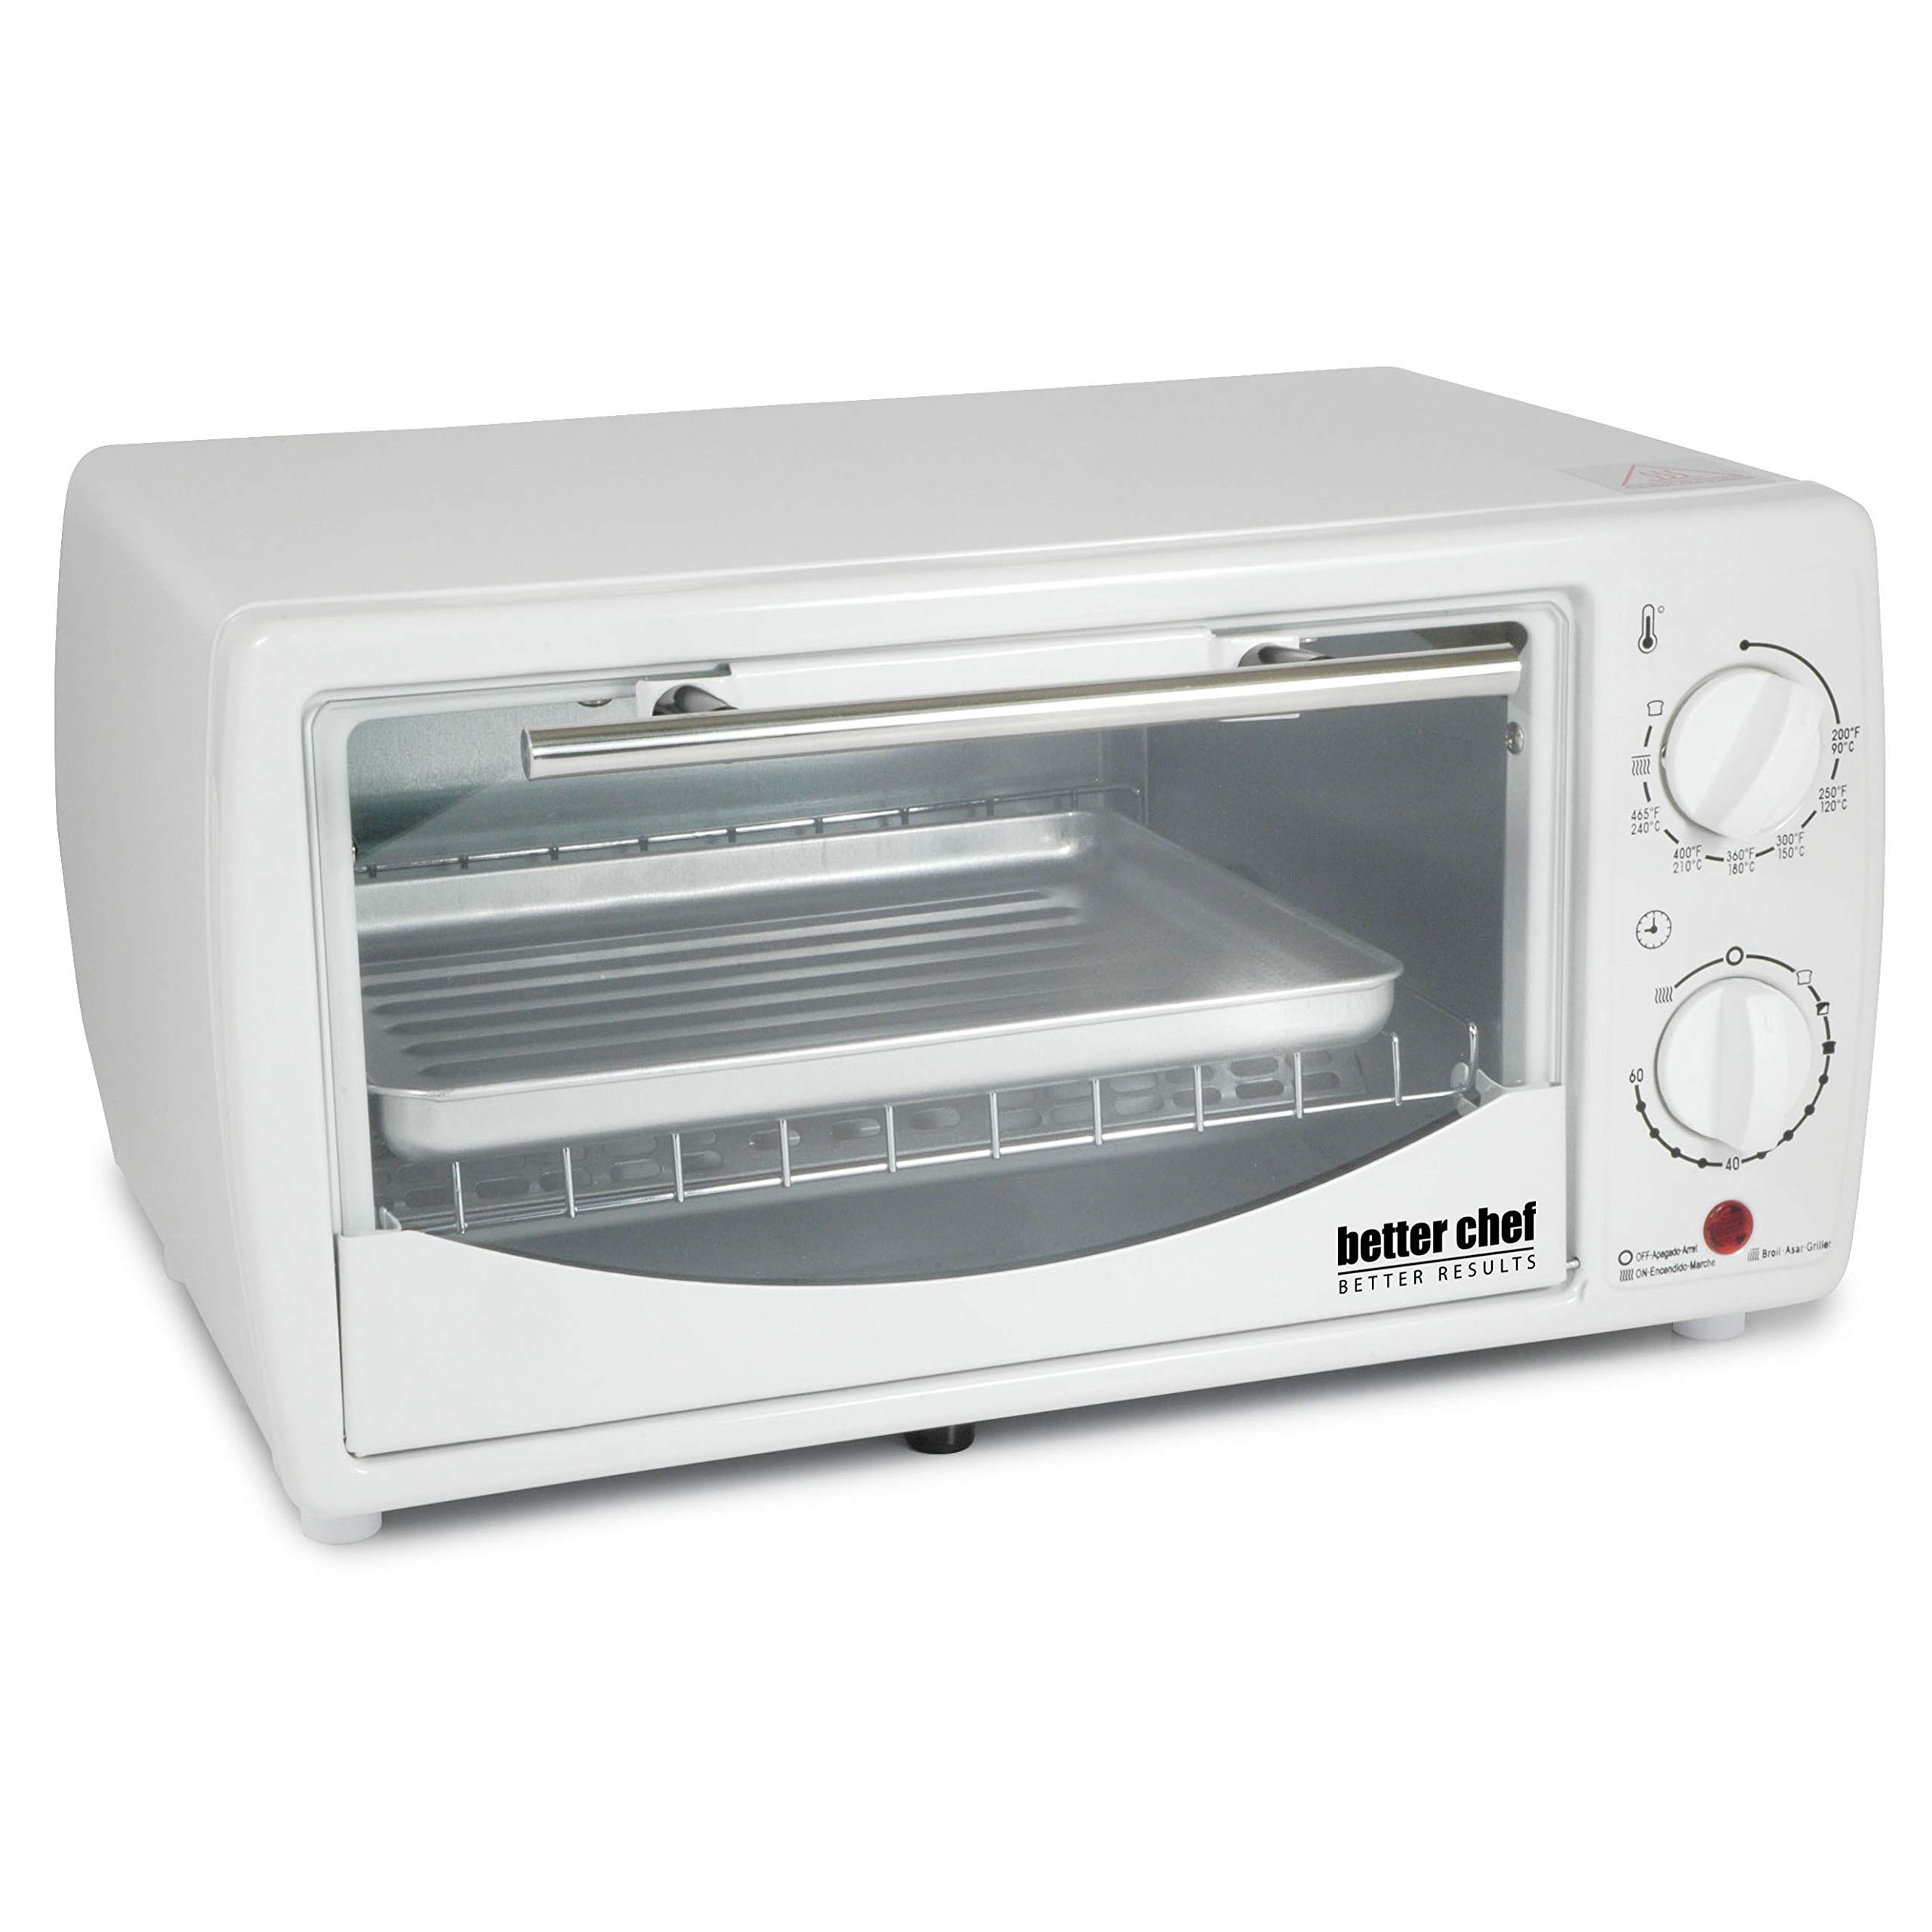 Better Chef 9 Liter Toaster Oven Broiler Red by Better Chef (Image #2)